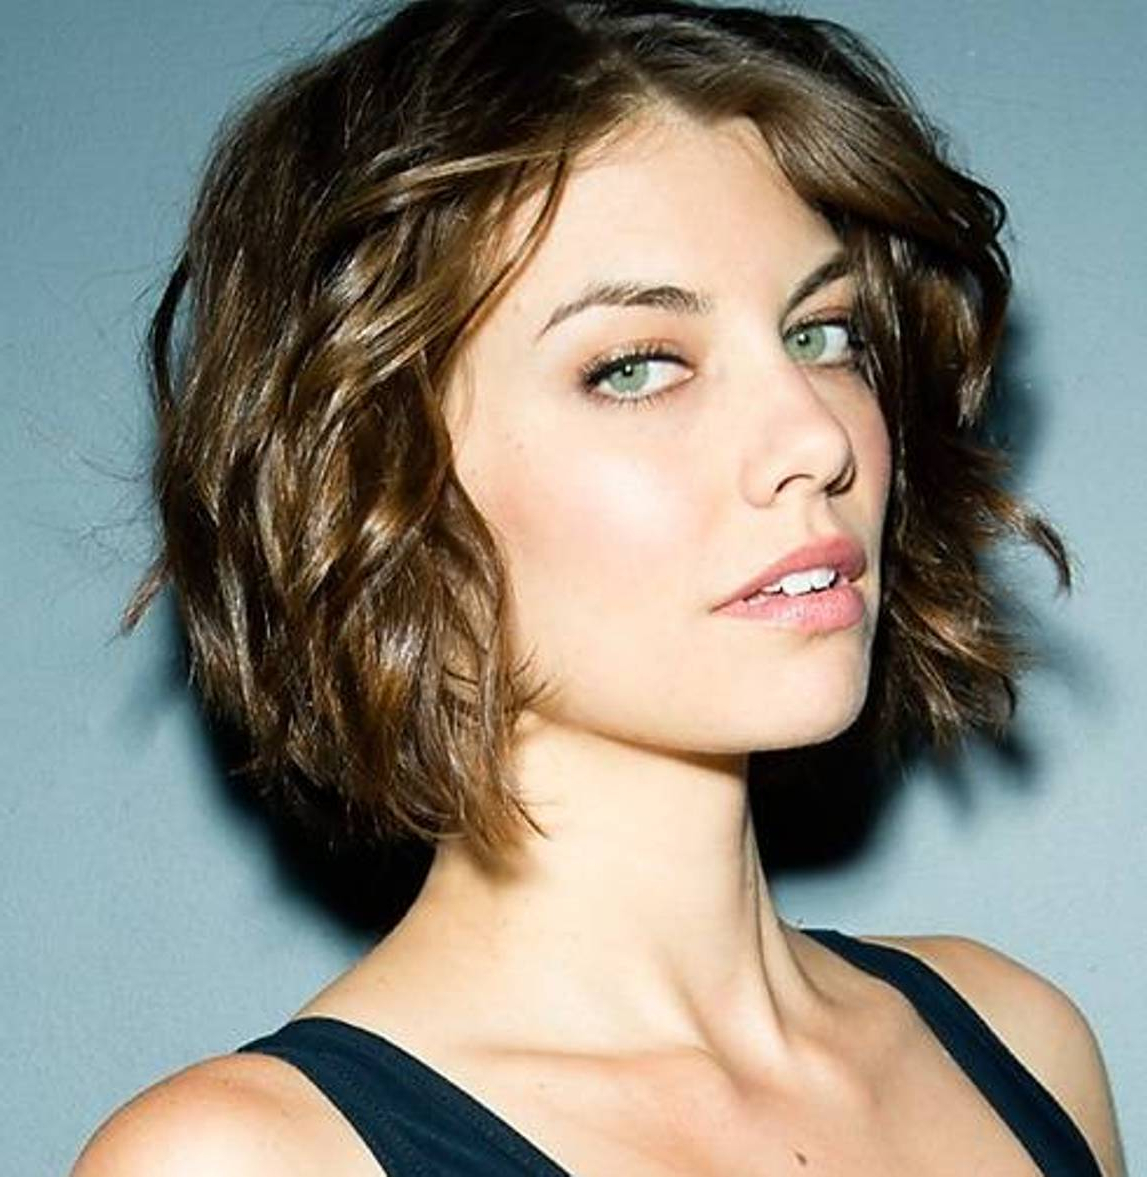 30 Short Wavy Hairstyles For Bouncy Textured Looks In Short Bob For Curly Hairstyles (View 8 of 20)